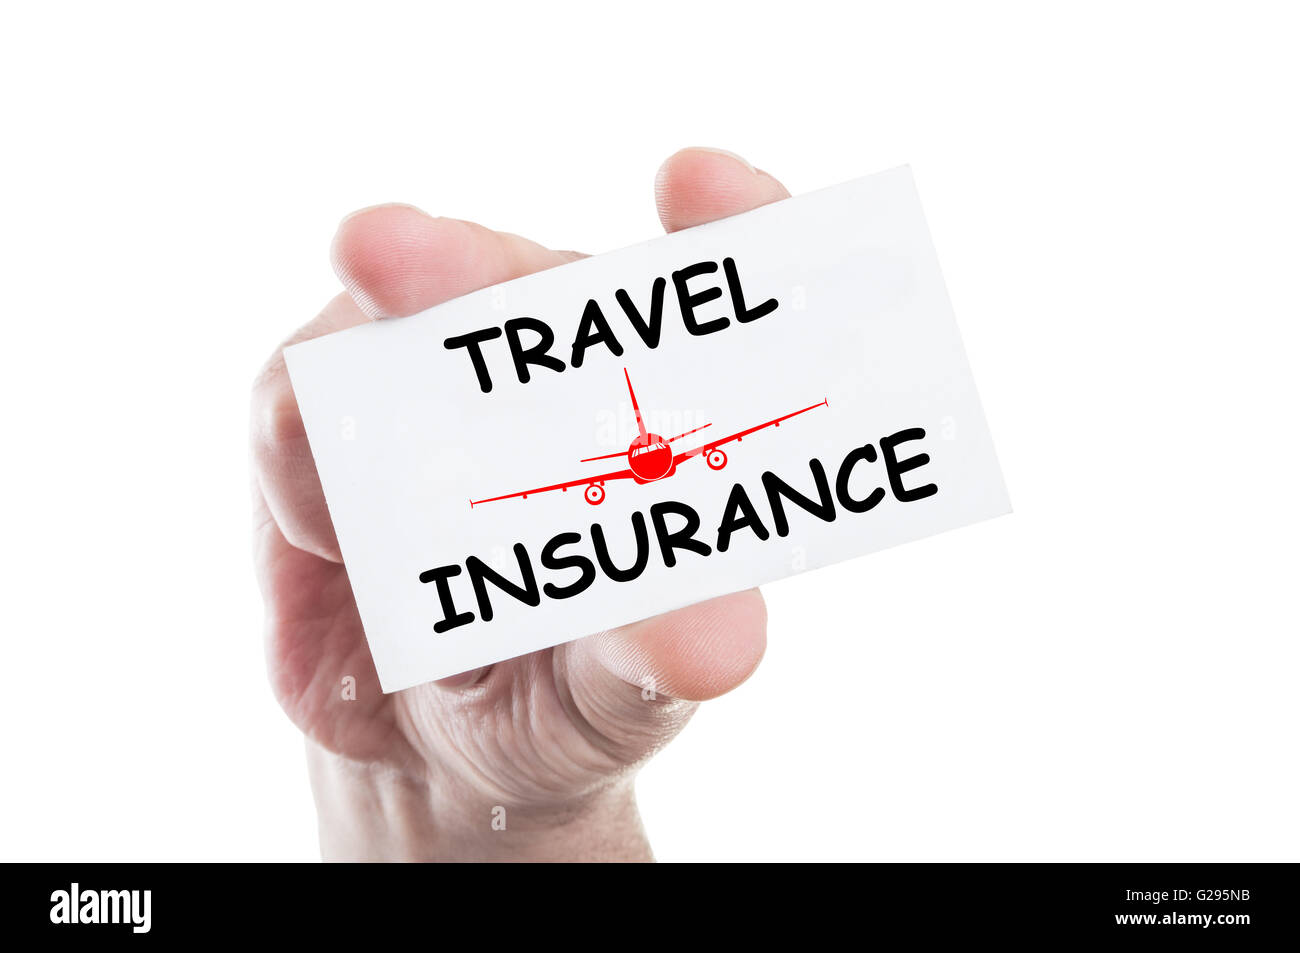 Travel insurance  concept card hold by hand isolated on white background - Stock Image